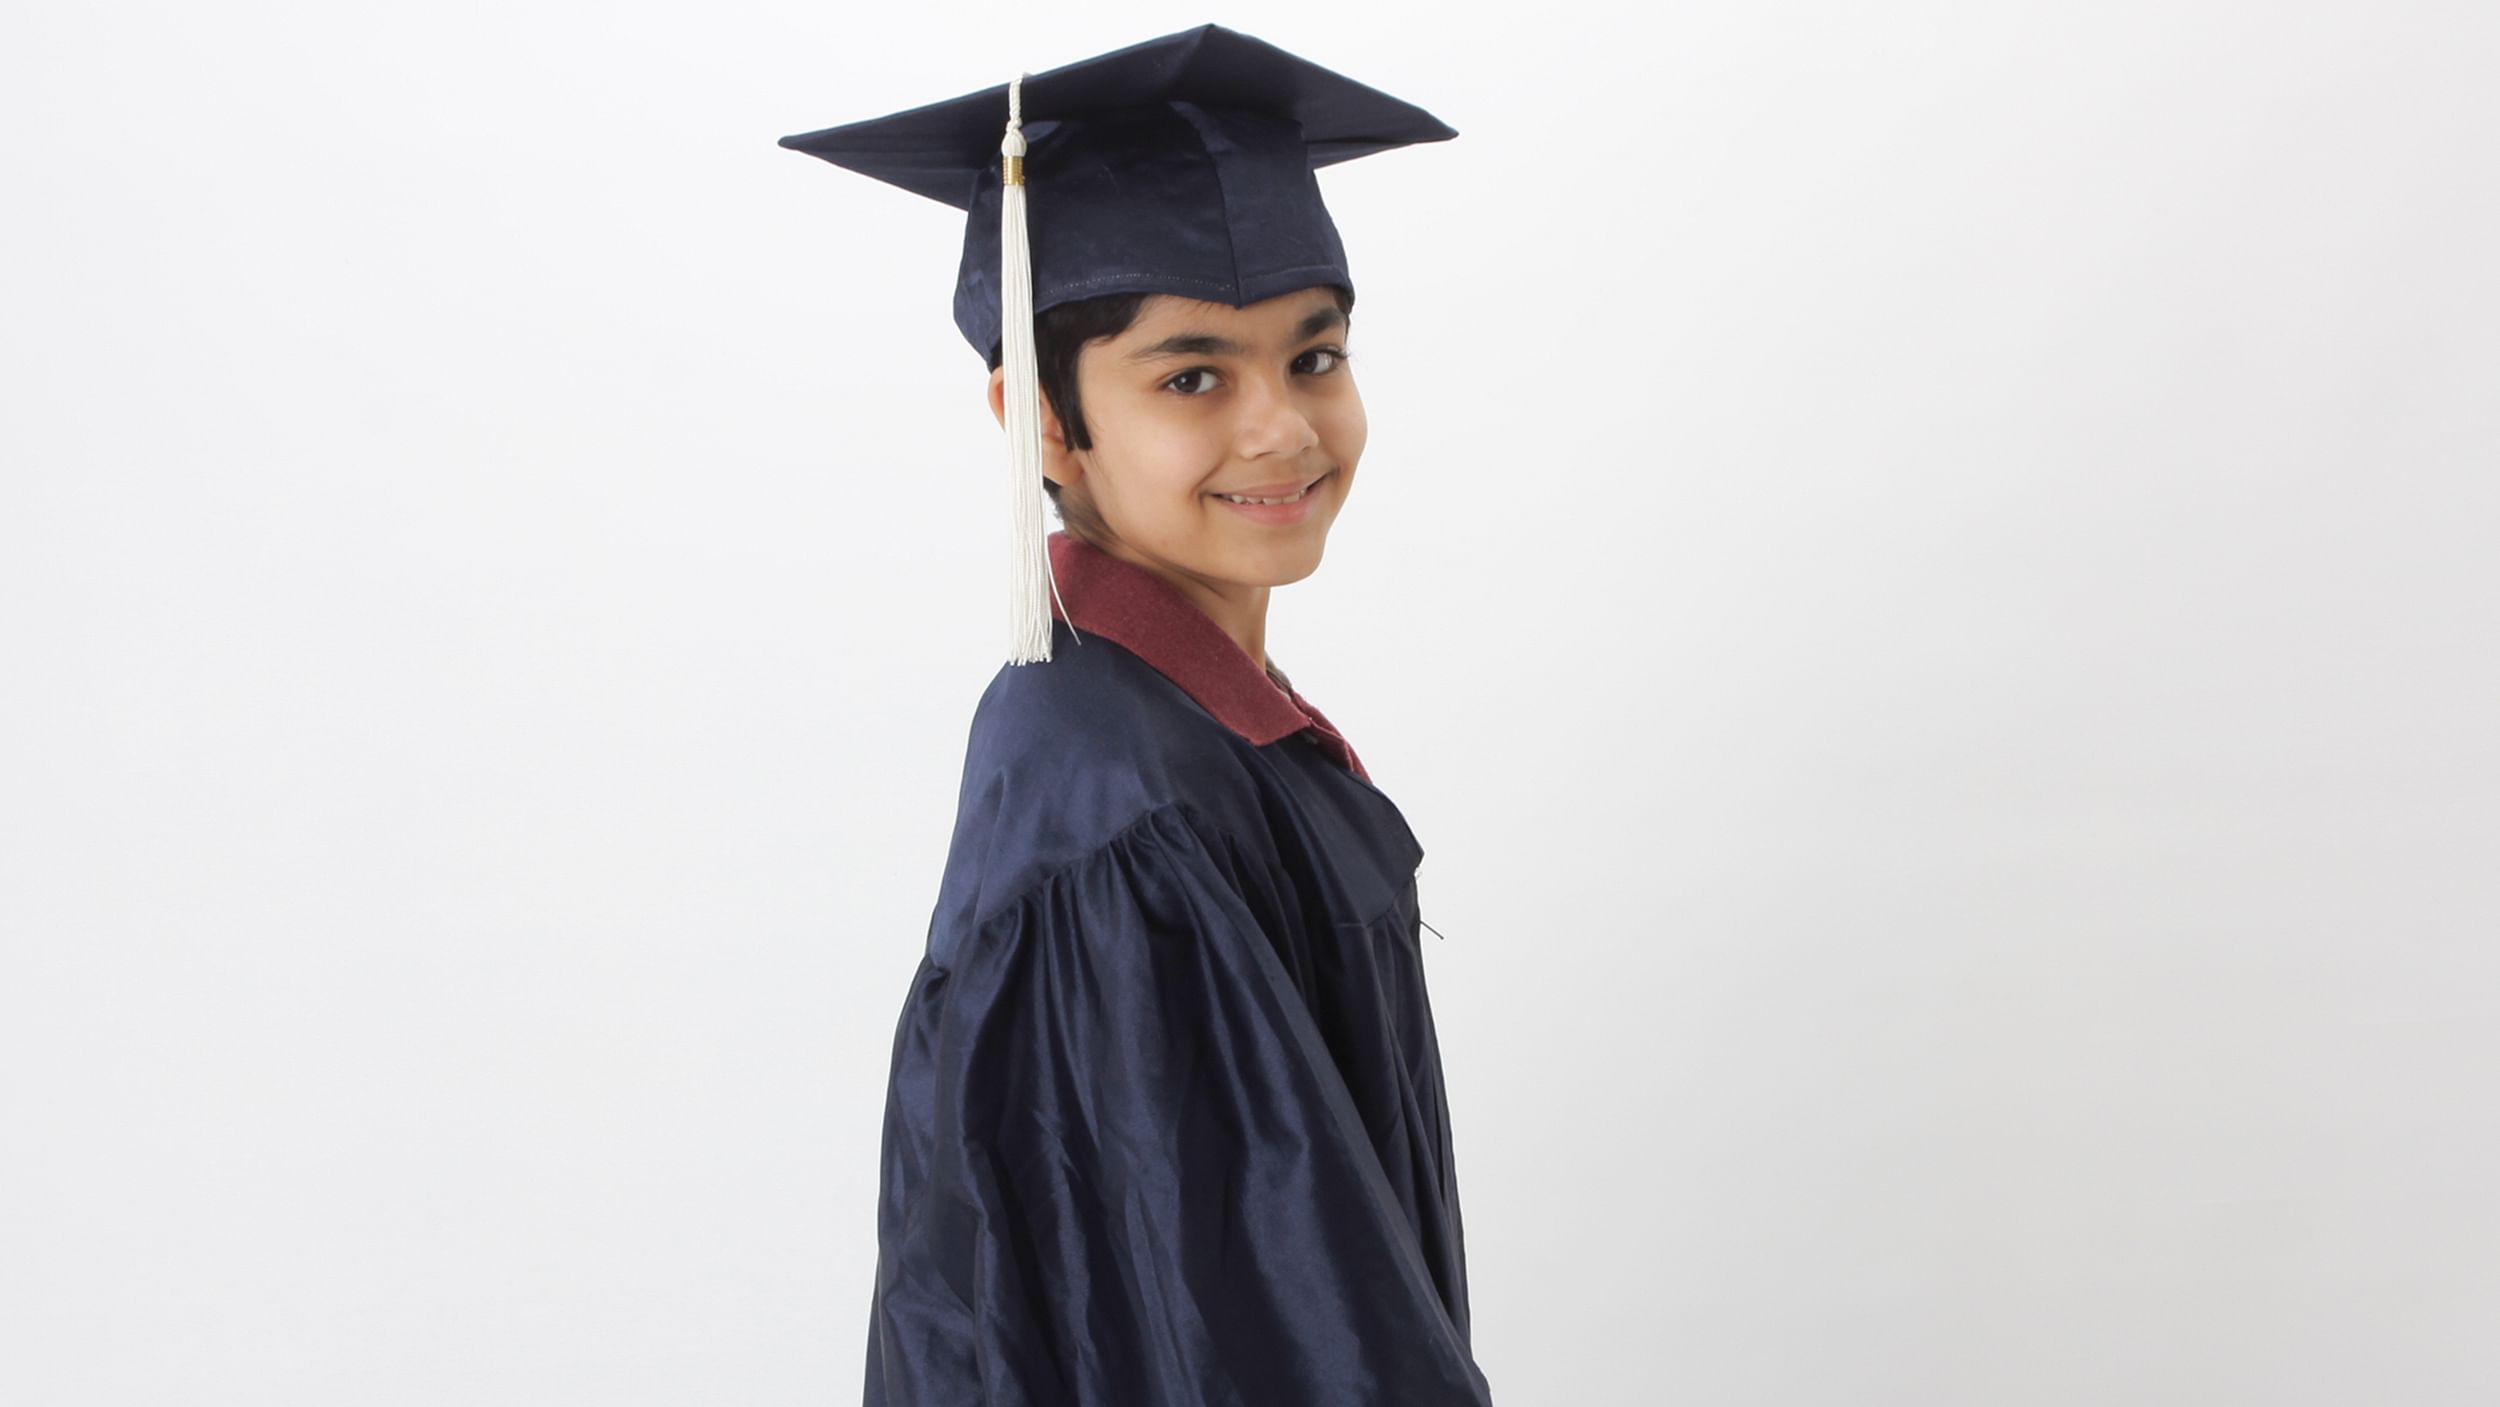 10 Year-old Indian American Tanishq Abraham graduating from school